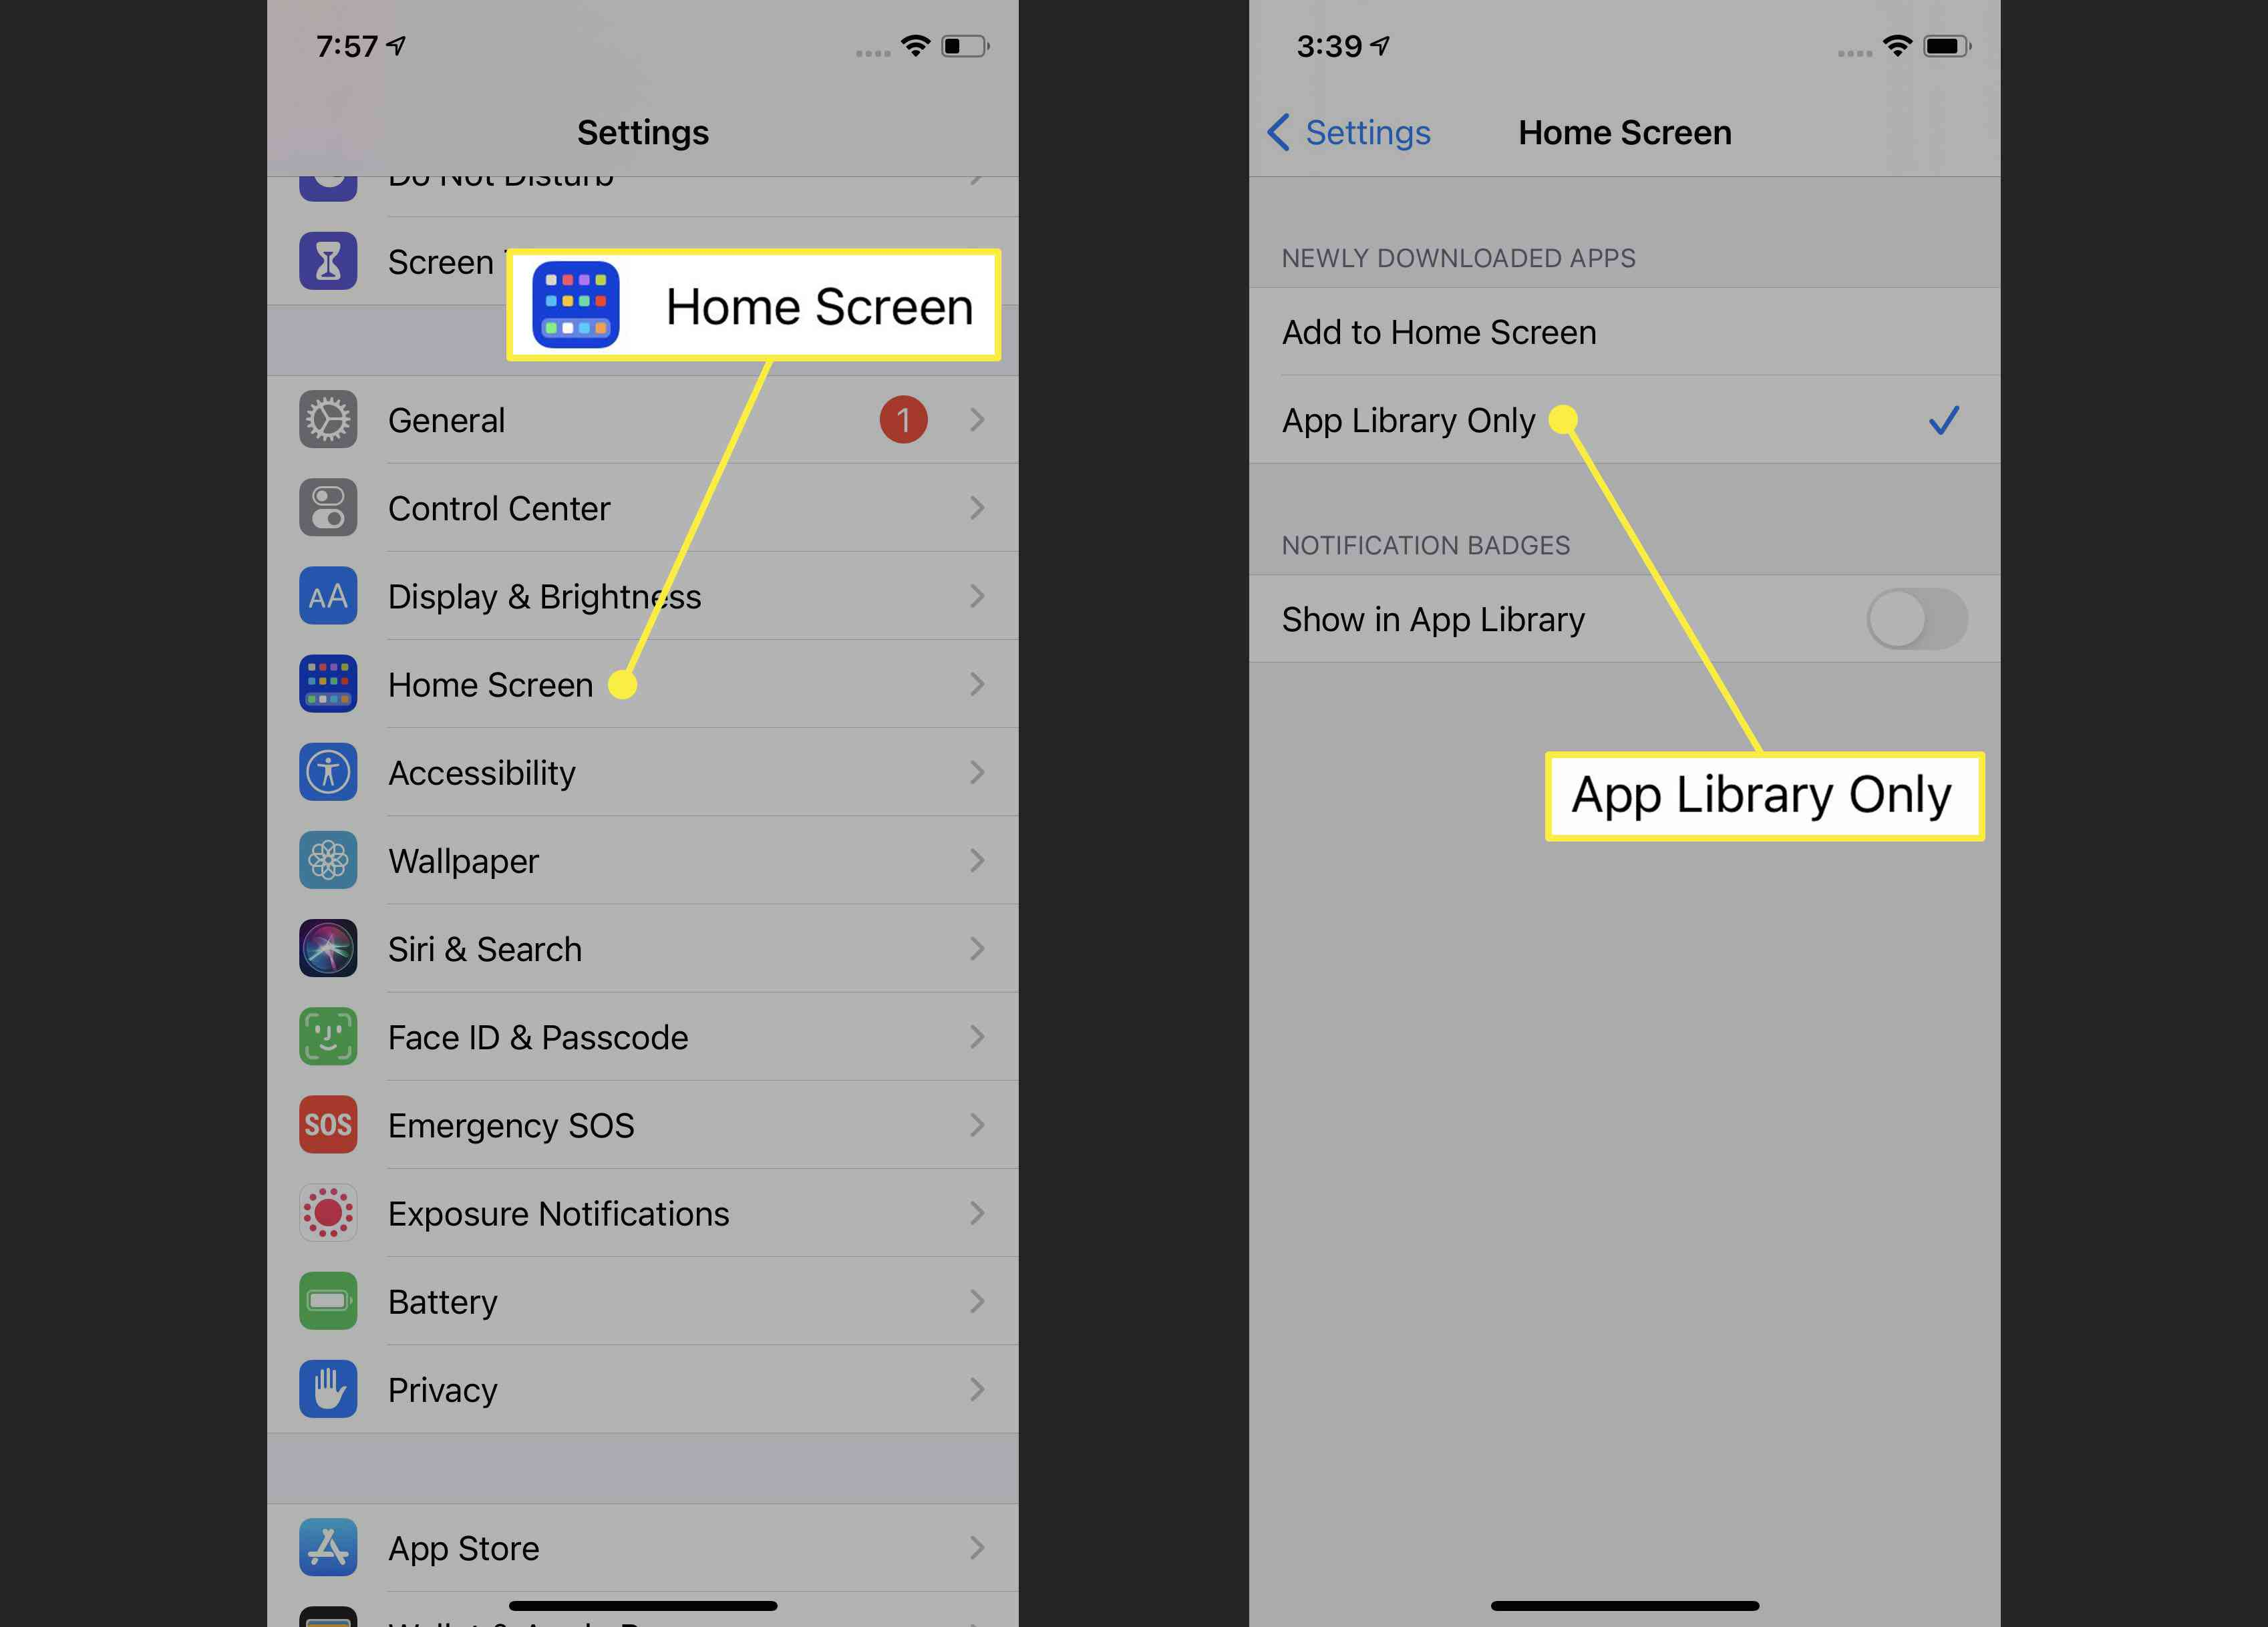 Setting for the App Library in iOS 14.